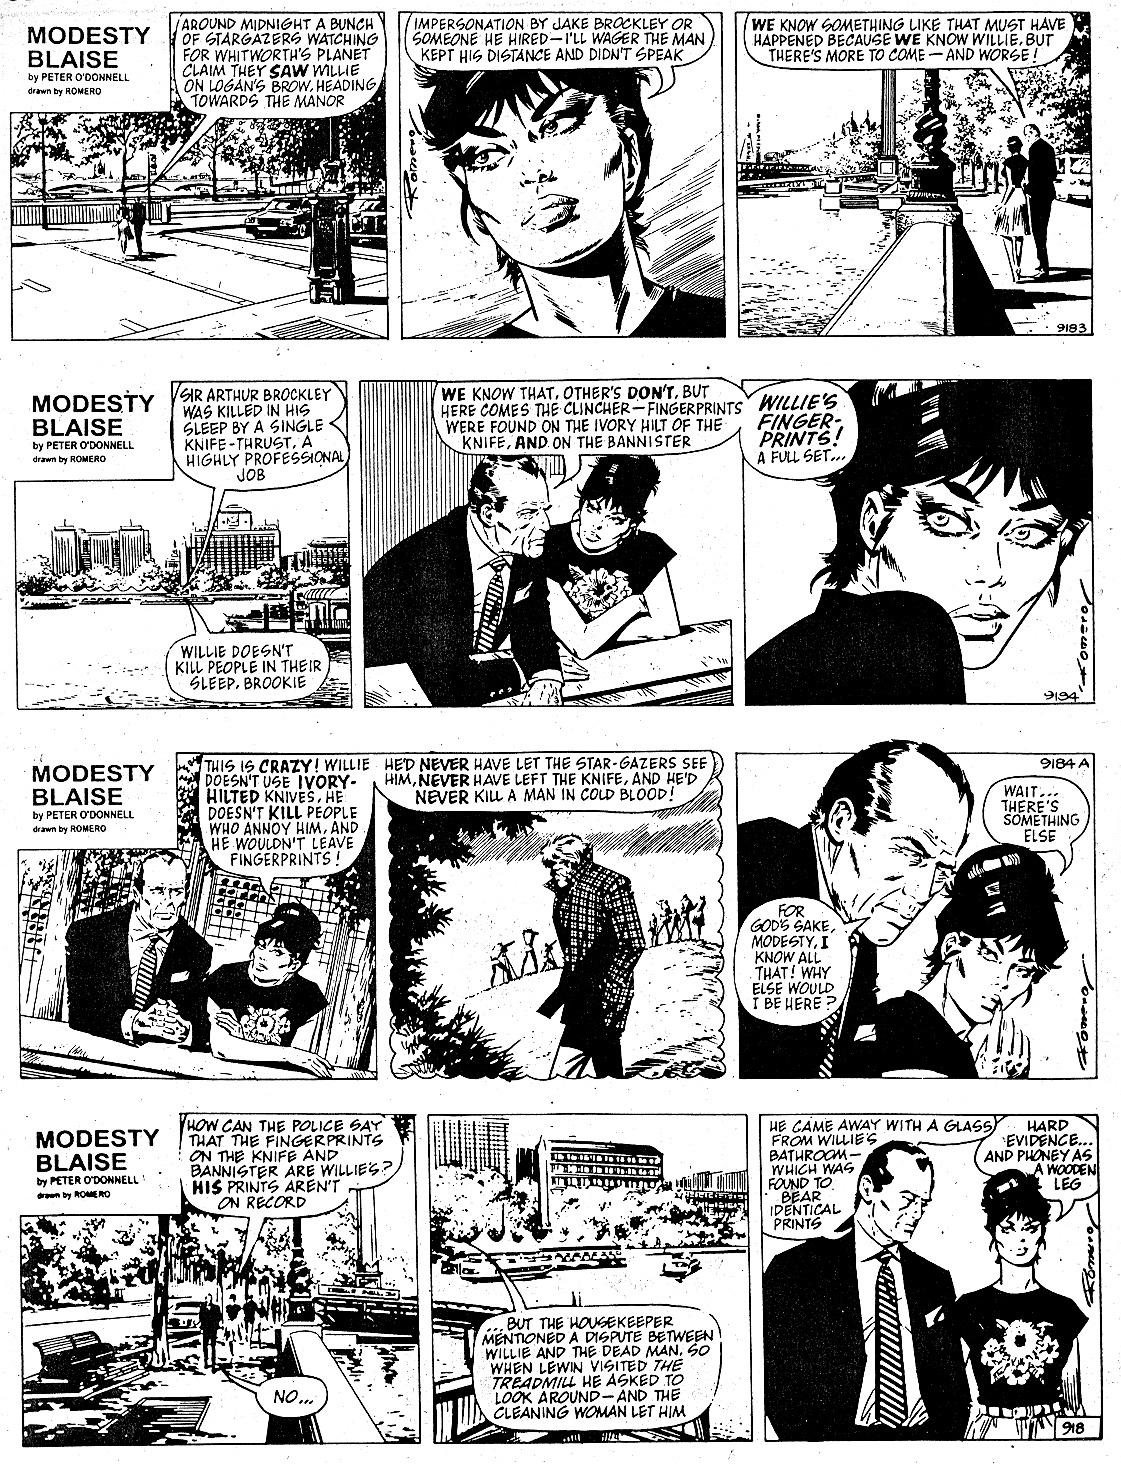 Modesty Blaise The Murder Frame review